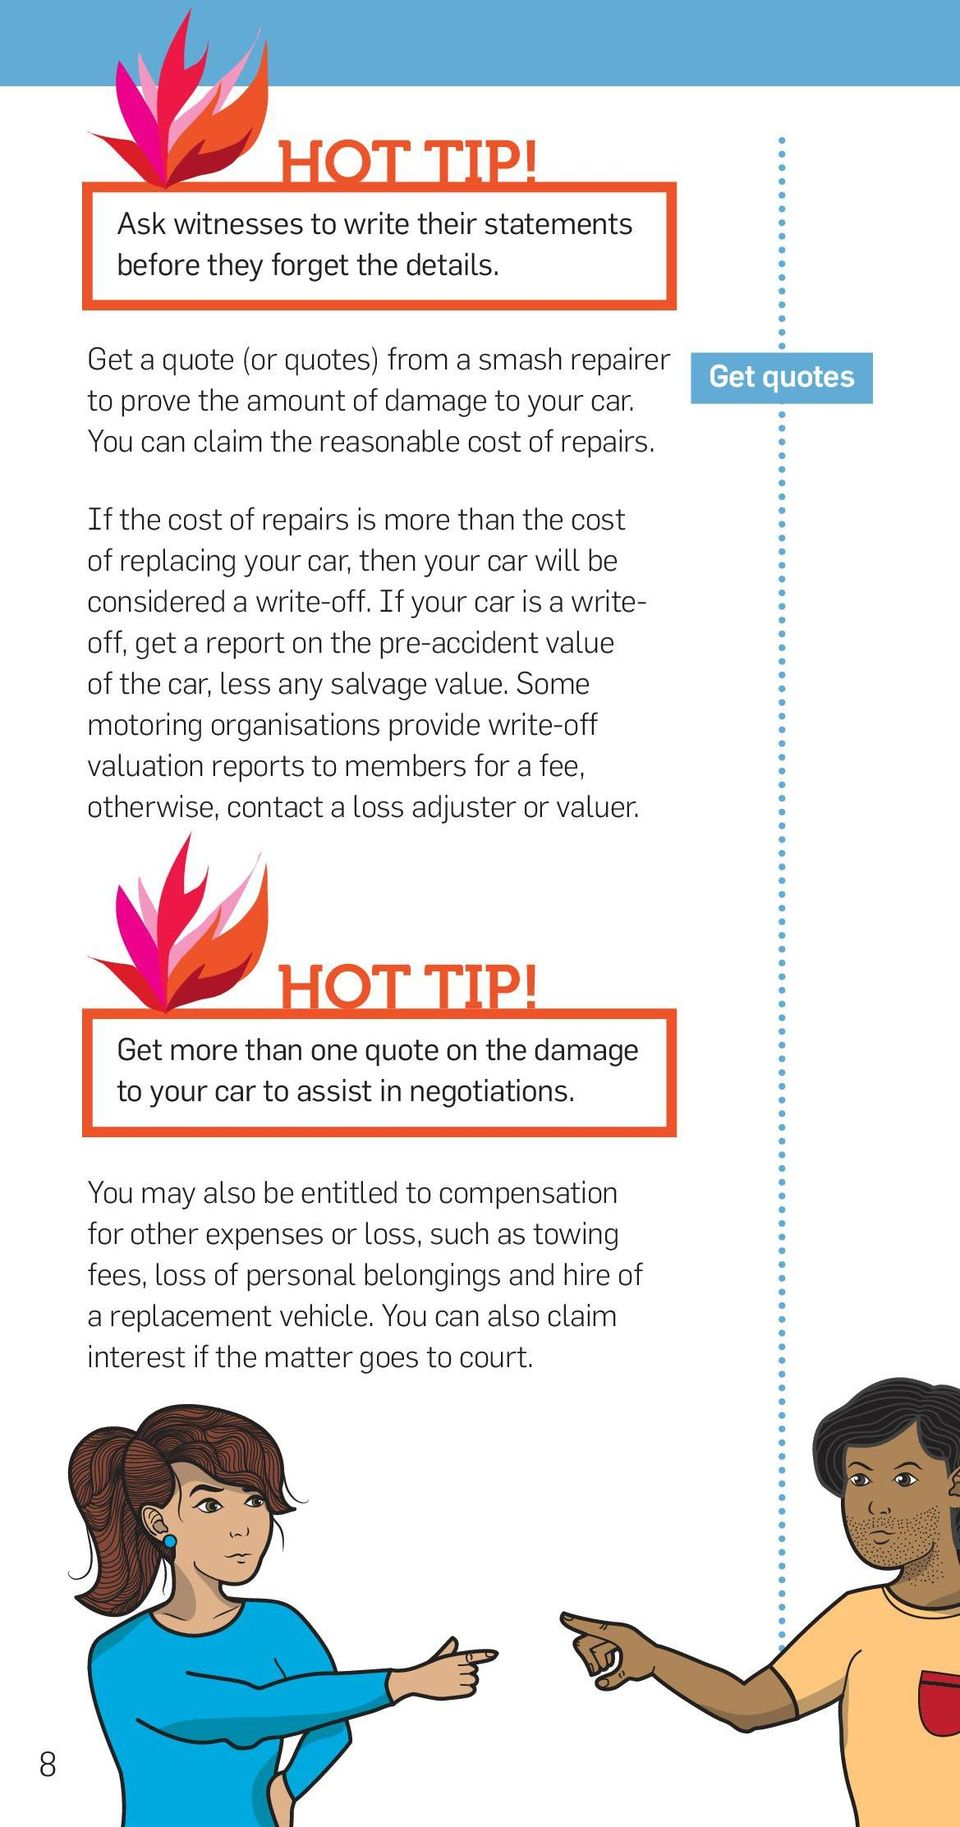 If your car is a writeoff, get a report on the pre-accident value of the car, less any salvage value.